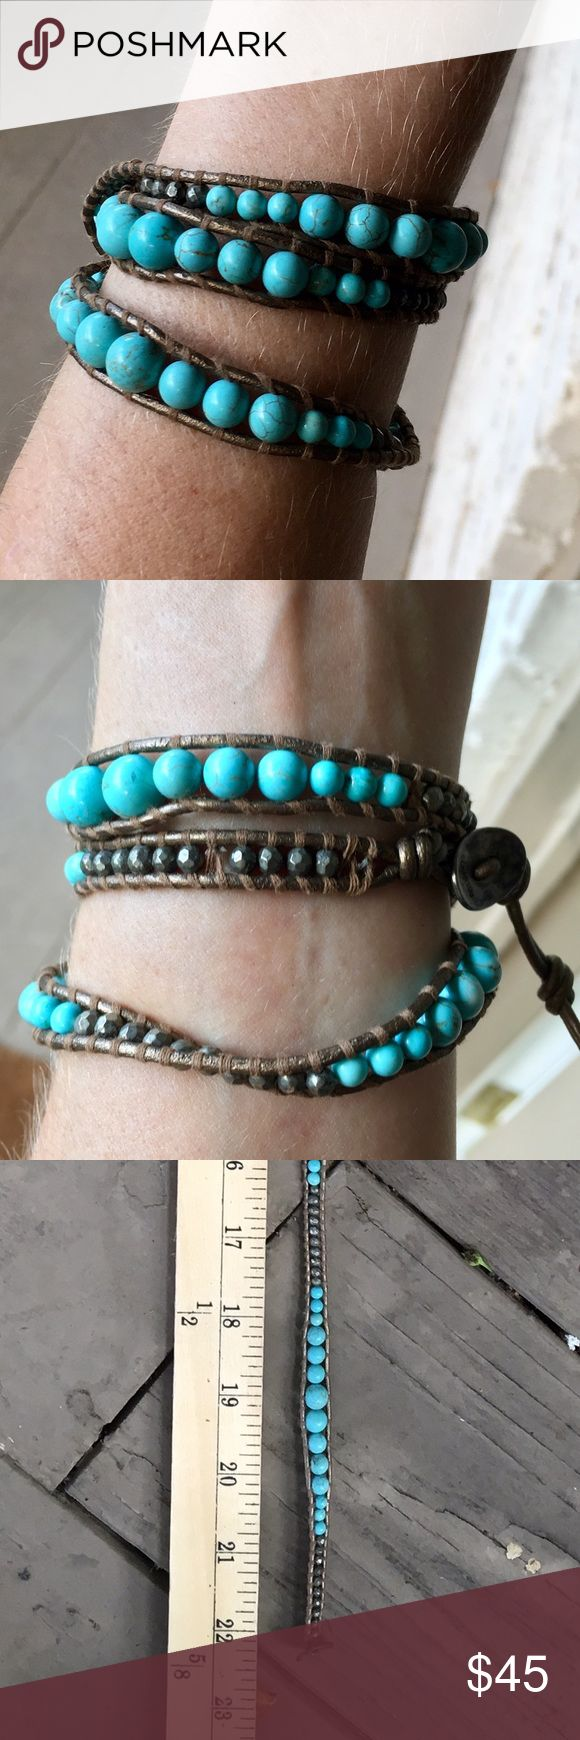 """Auth Chan Luu Turquoise & Hematite Wrap Bracelet Authentic Chan Luu Turquoise & Hematite 3 Wrap Bracelet. Adjustable 21"""" - 22"""". Gunmetal leather. Please feel free to ask any questions! Make me an offer... no trades please. Thanks! Chan Luu Jewelry Bracelets"""